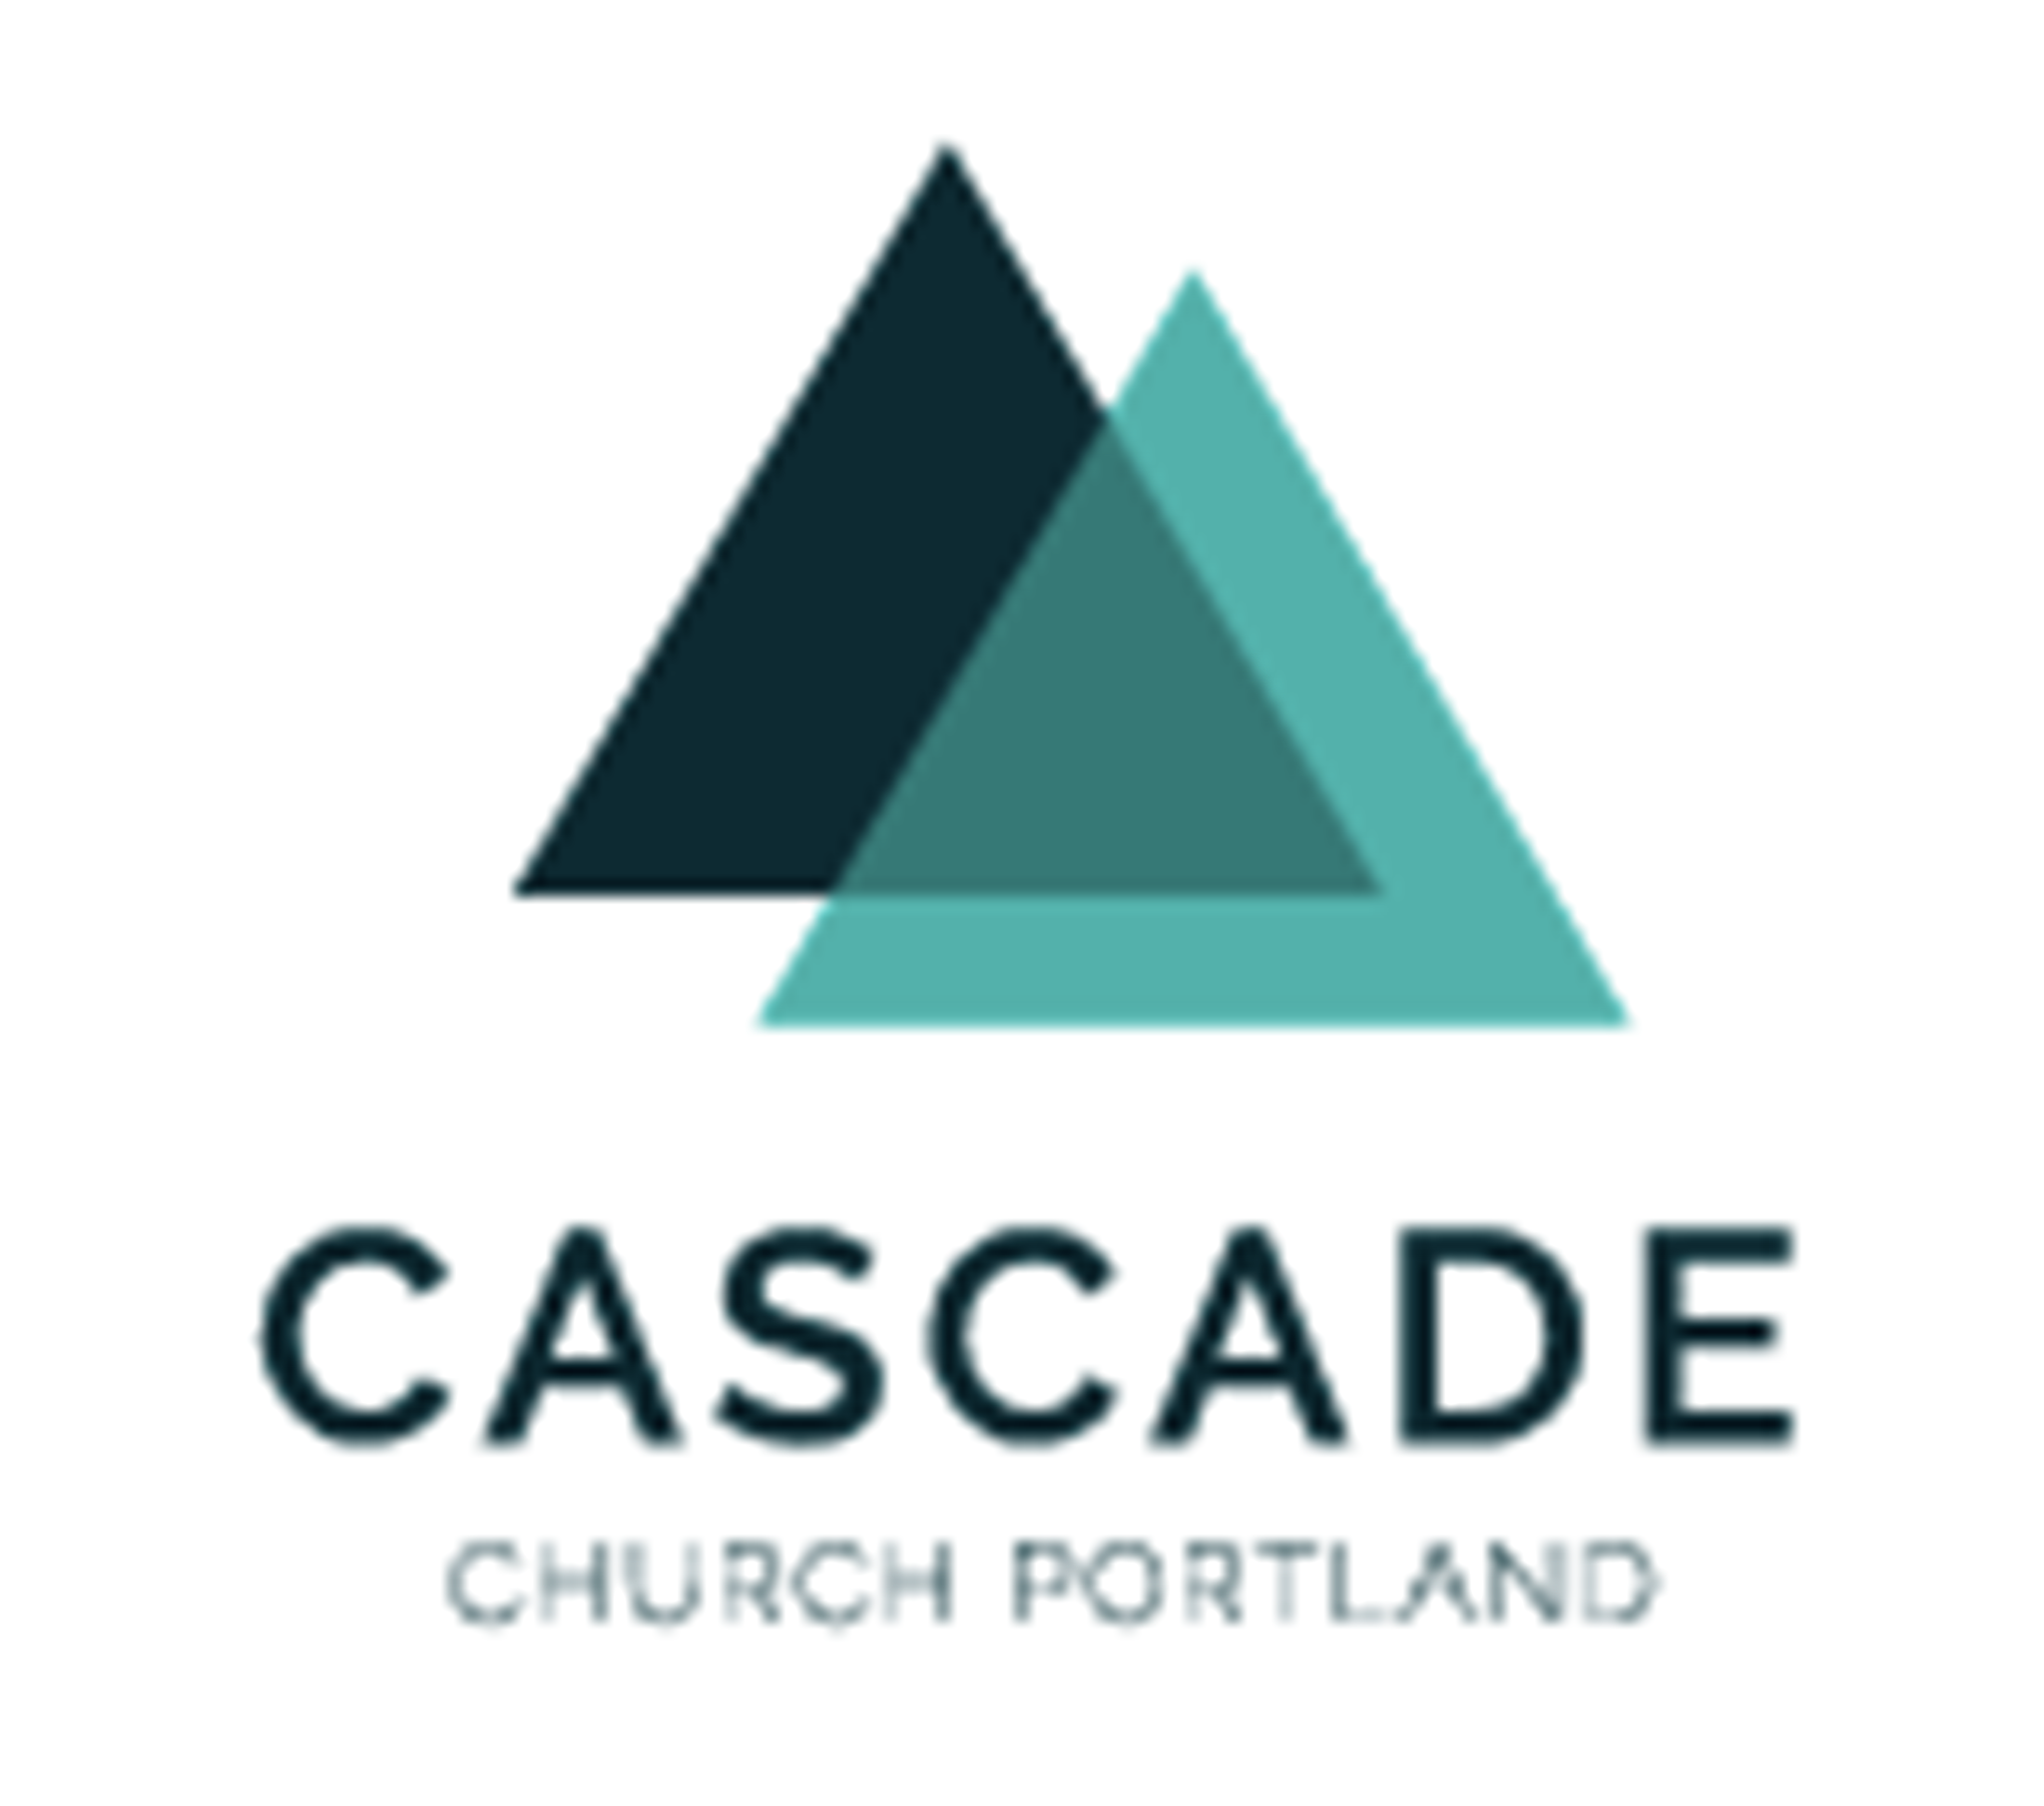 Cascade Church Portland